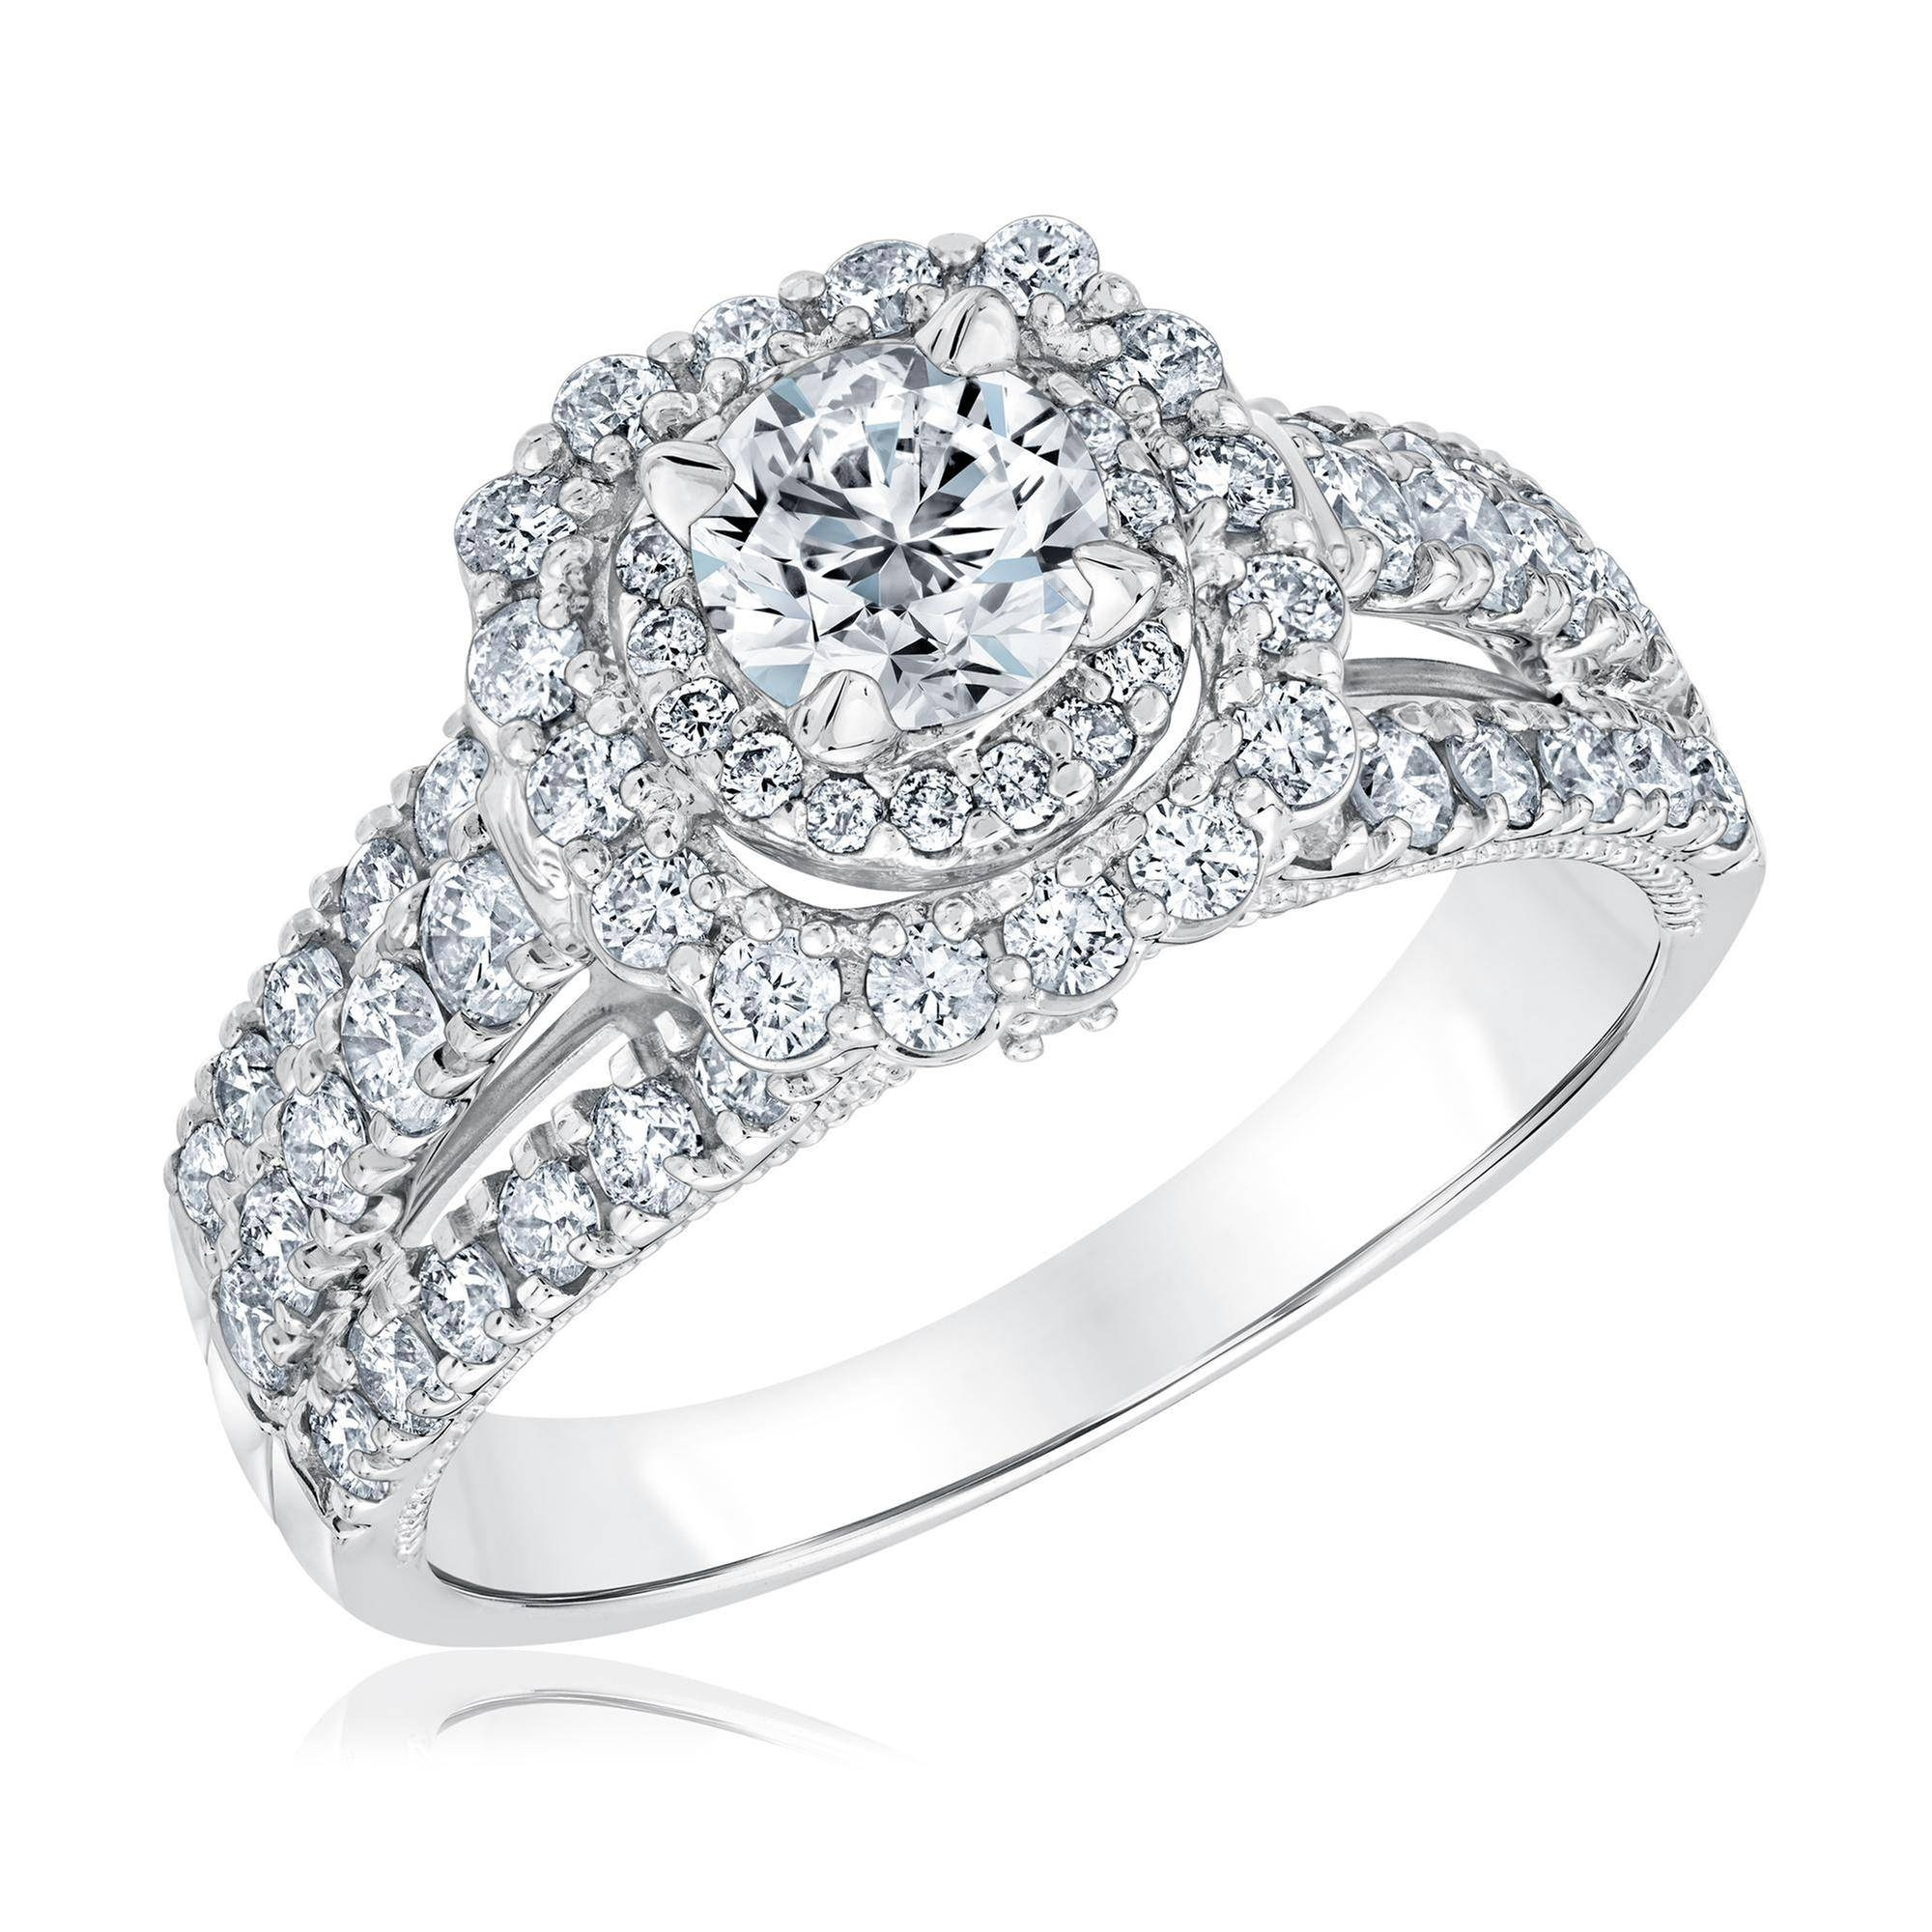 Engagement Rings Page 1 | Reeds Jewelers In Most Recent 3 Stone Anniversary Rings (Gallery 25 of 25)